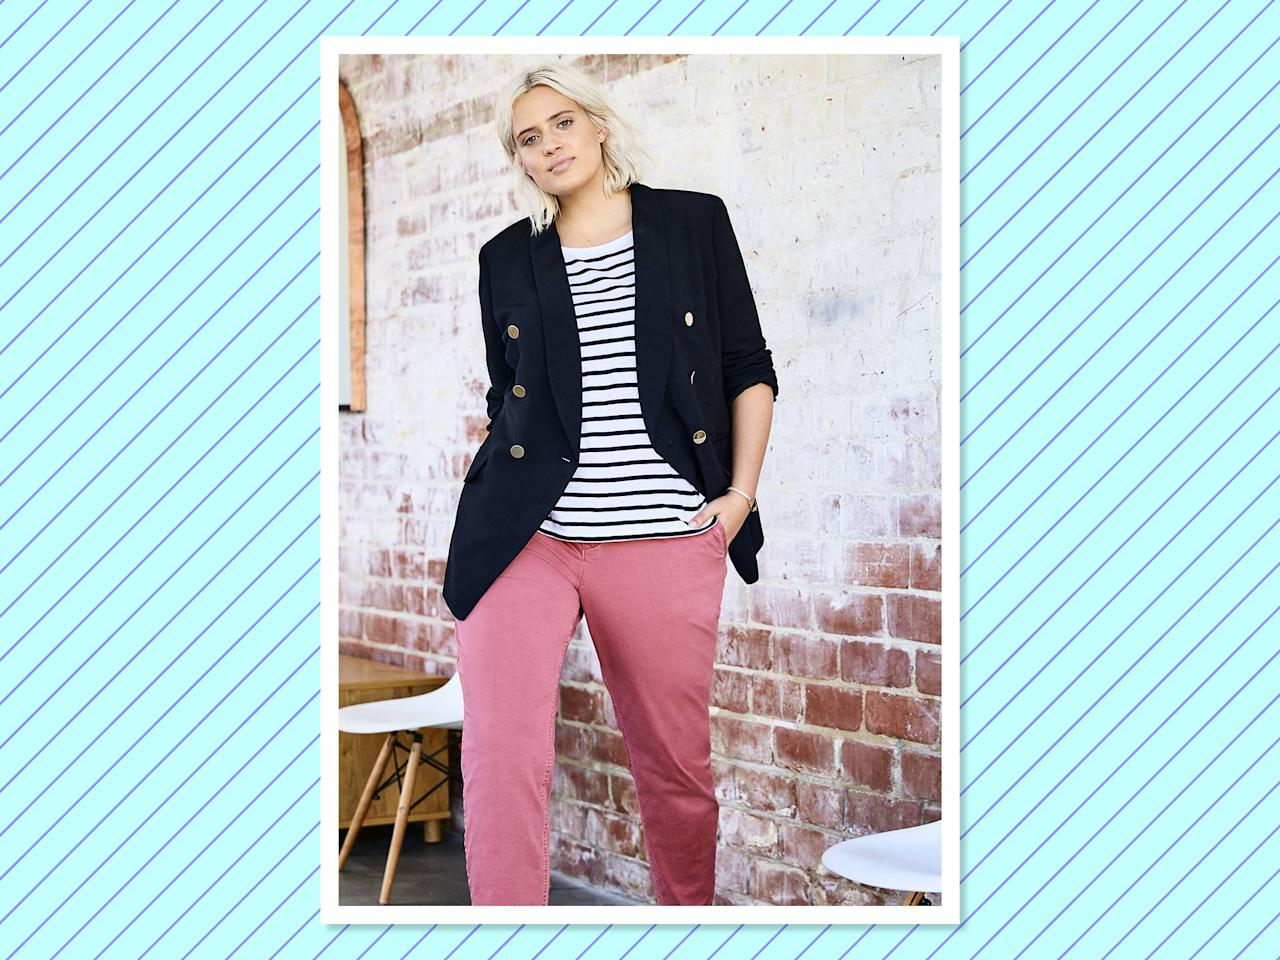 "<p>If you are a young professional who favors an ever-so-cute preppy vibe with a little personality, this is the store for you. After an overwhelming amount of customer requests for the successful brand to extend its sizes, Loft launched a full-on plus-size department last September. <a rel=""nofollow"" href=""https://www.loft.com/plus-view-all/cat3760001"">Loft</a> offers relaxed fashion for work or home, from classic tailored suits to separates to dresses. Sizes 0-26 (Photo: Loft) </p>"